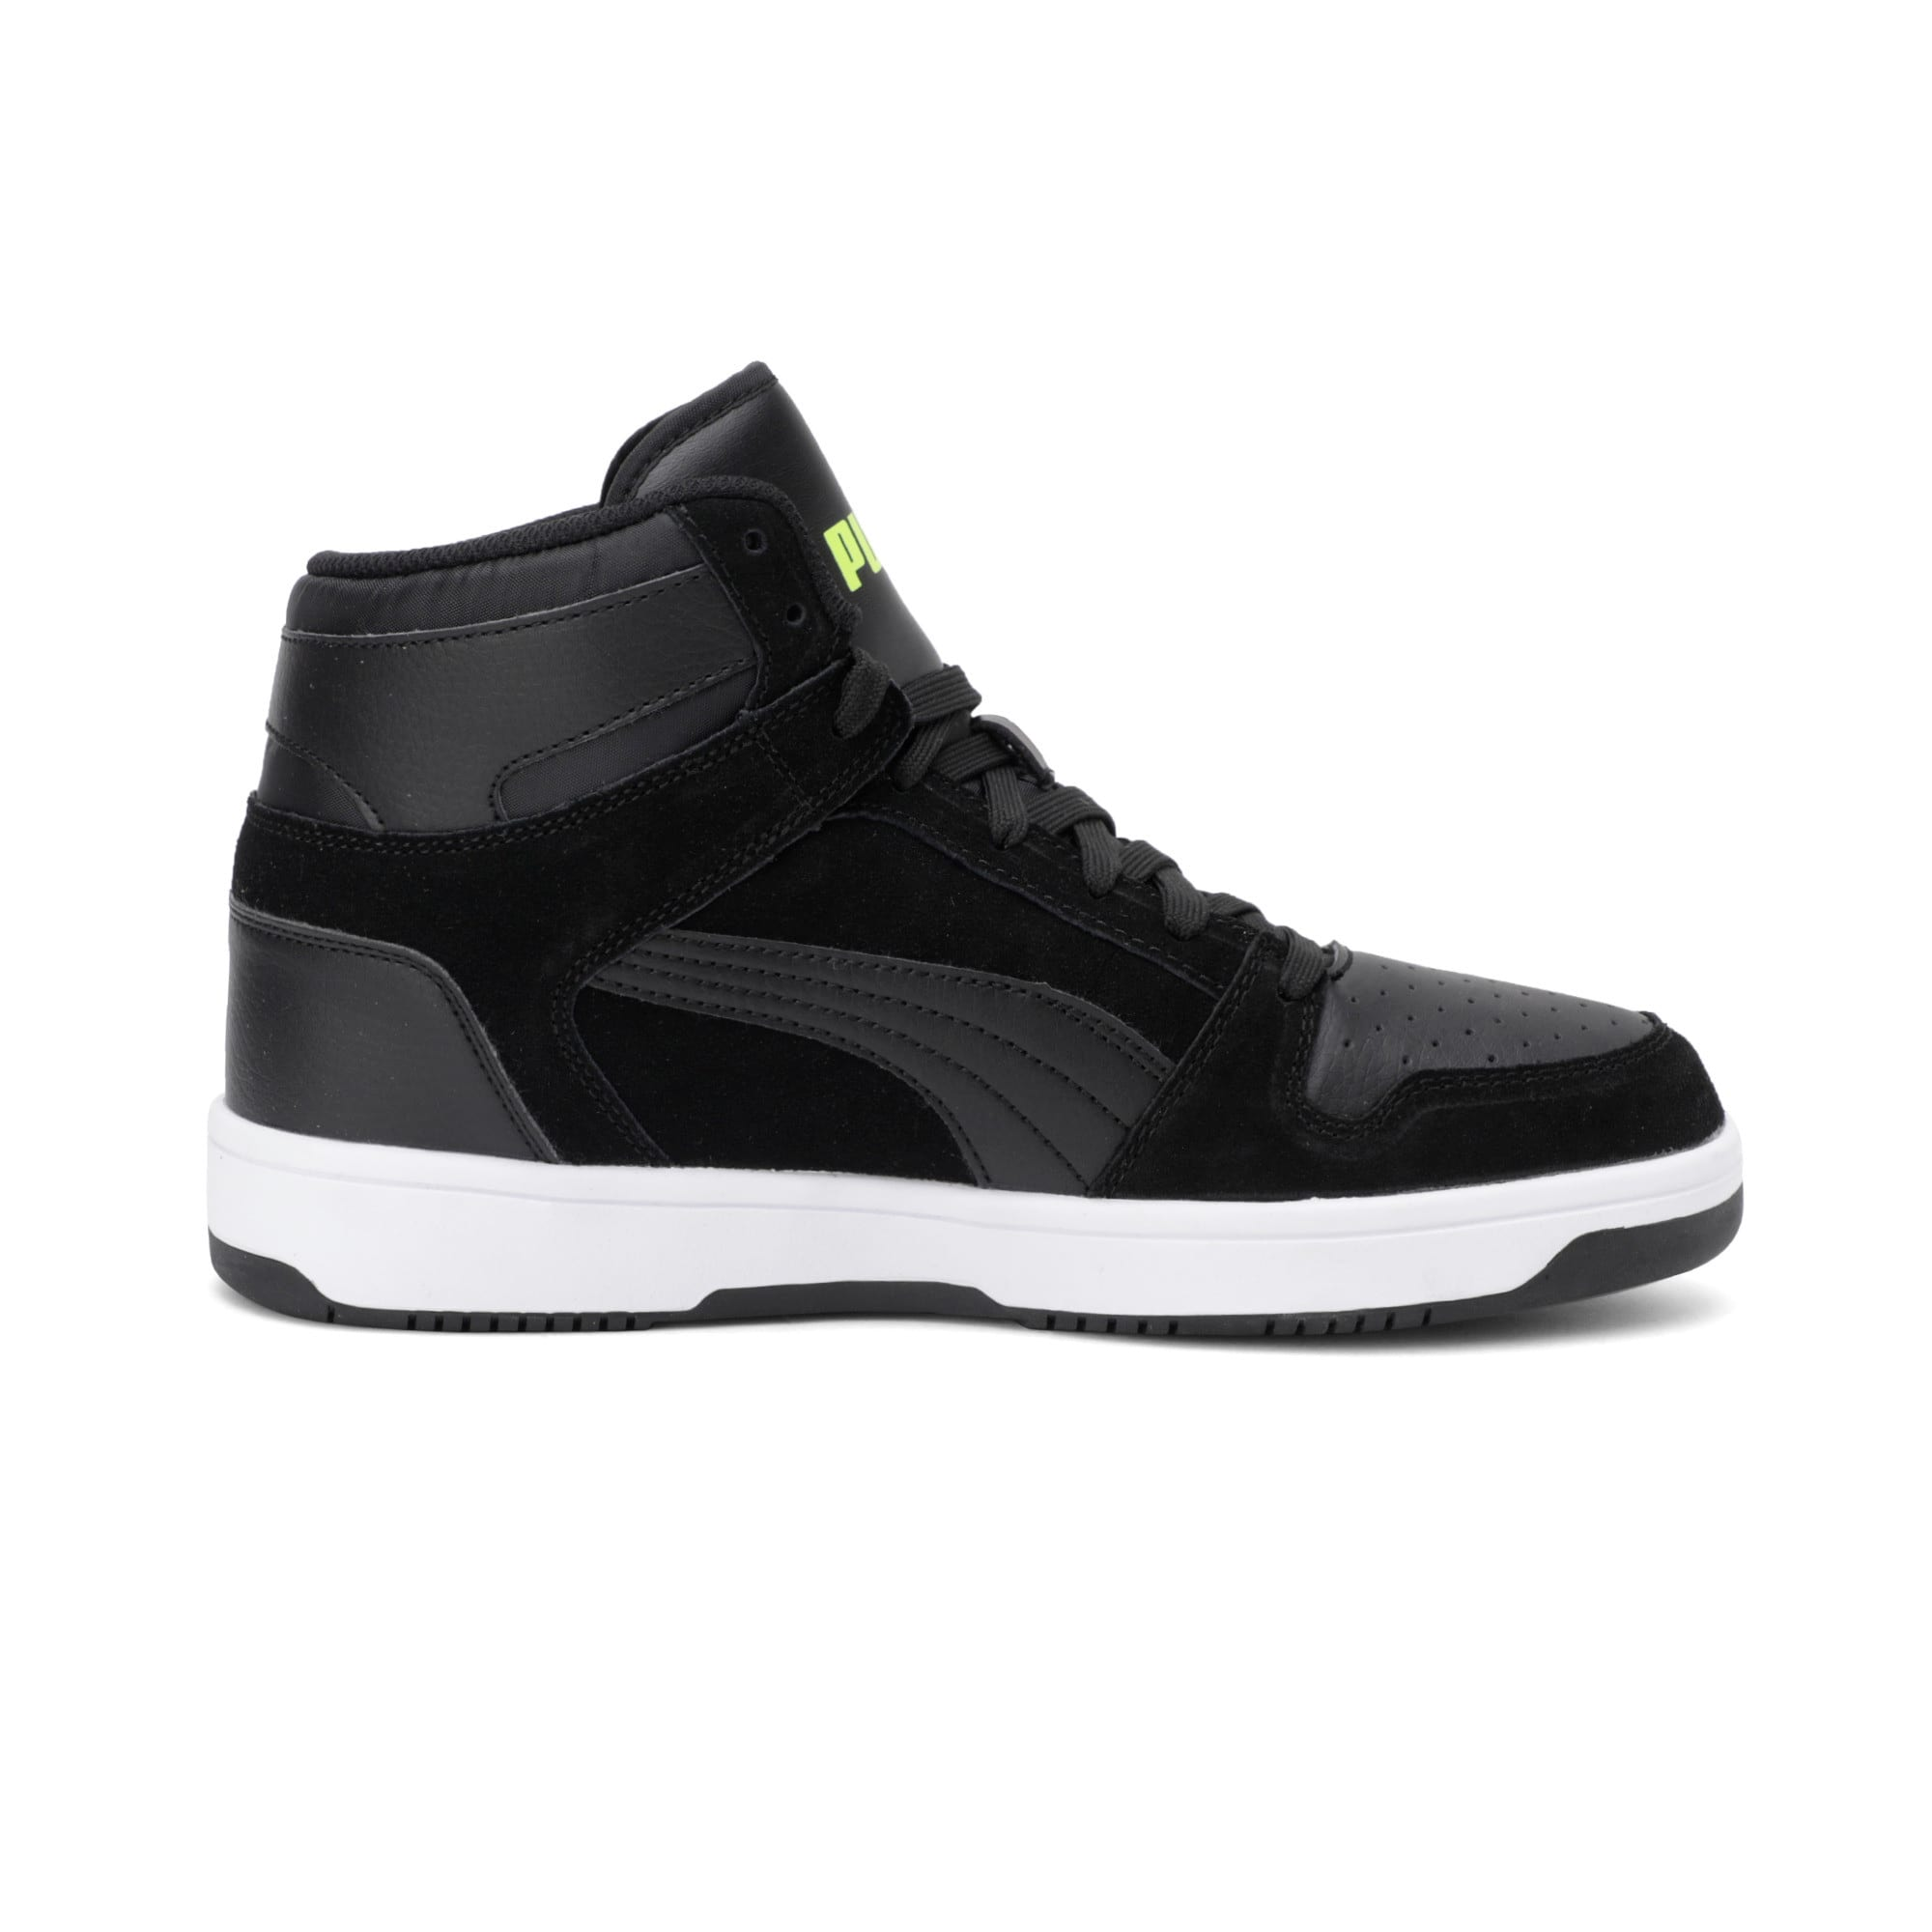 Thumbnail 7 of Rebound Layup Suede Trainers, Black-Yellow Alert-White, medium-IND